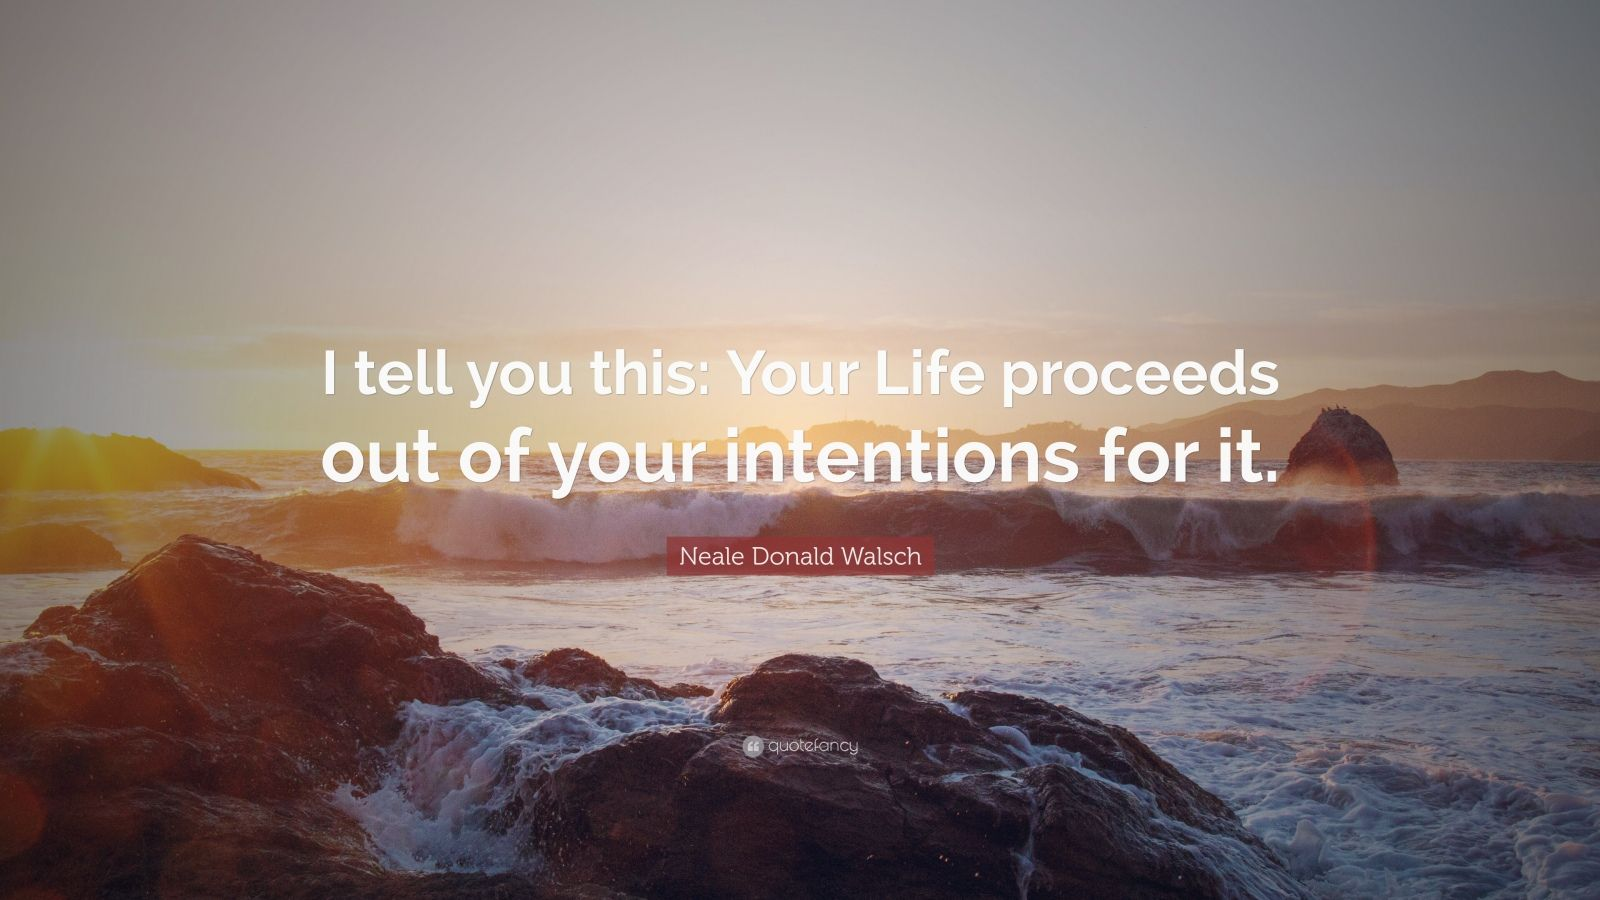 """Neale Donald Walsch Quote: """"I tell you this: Your Life proceeds out of your intentions for it."""""""